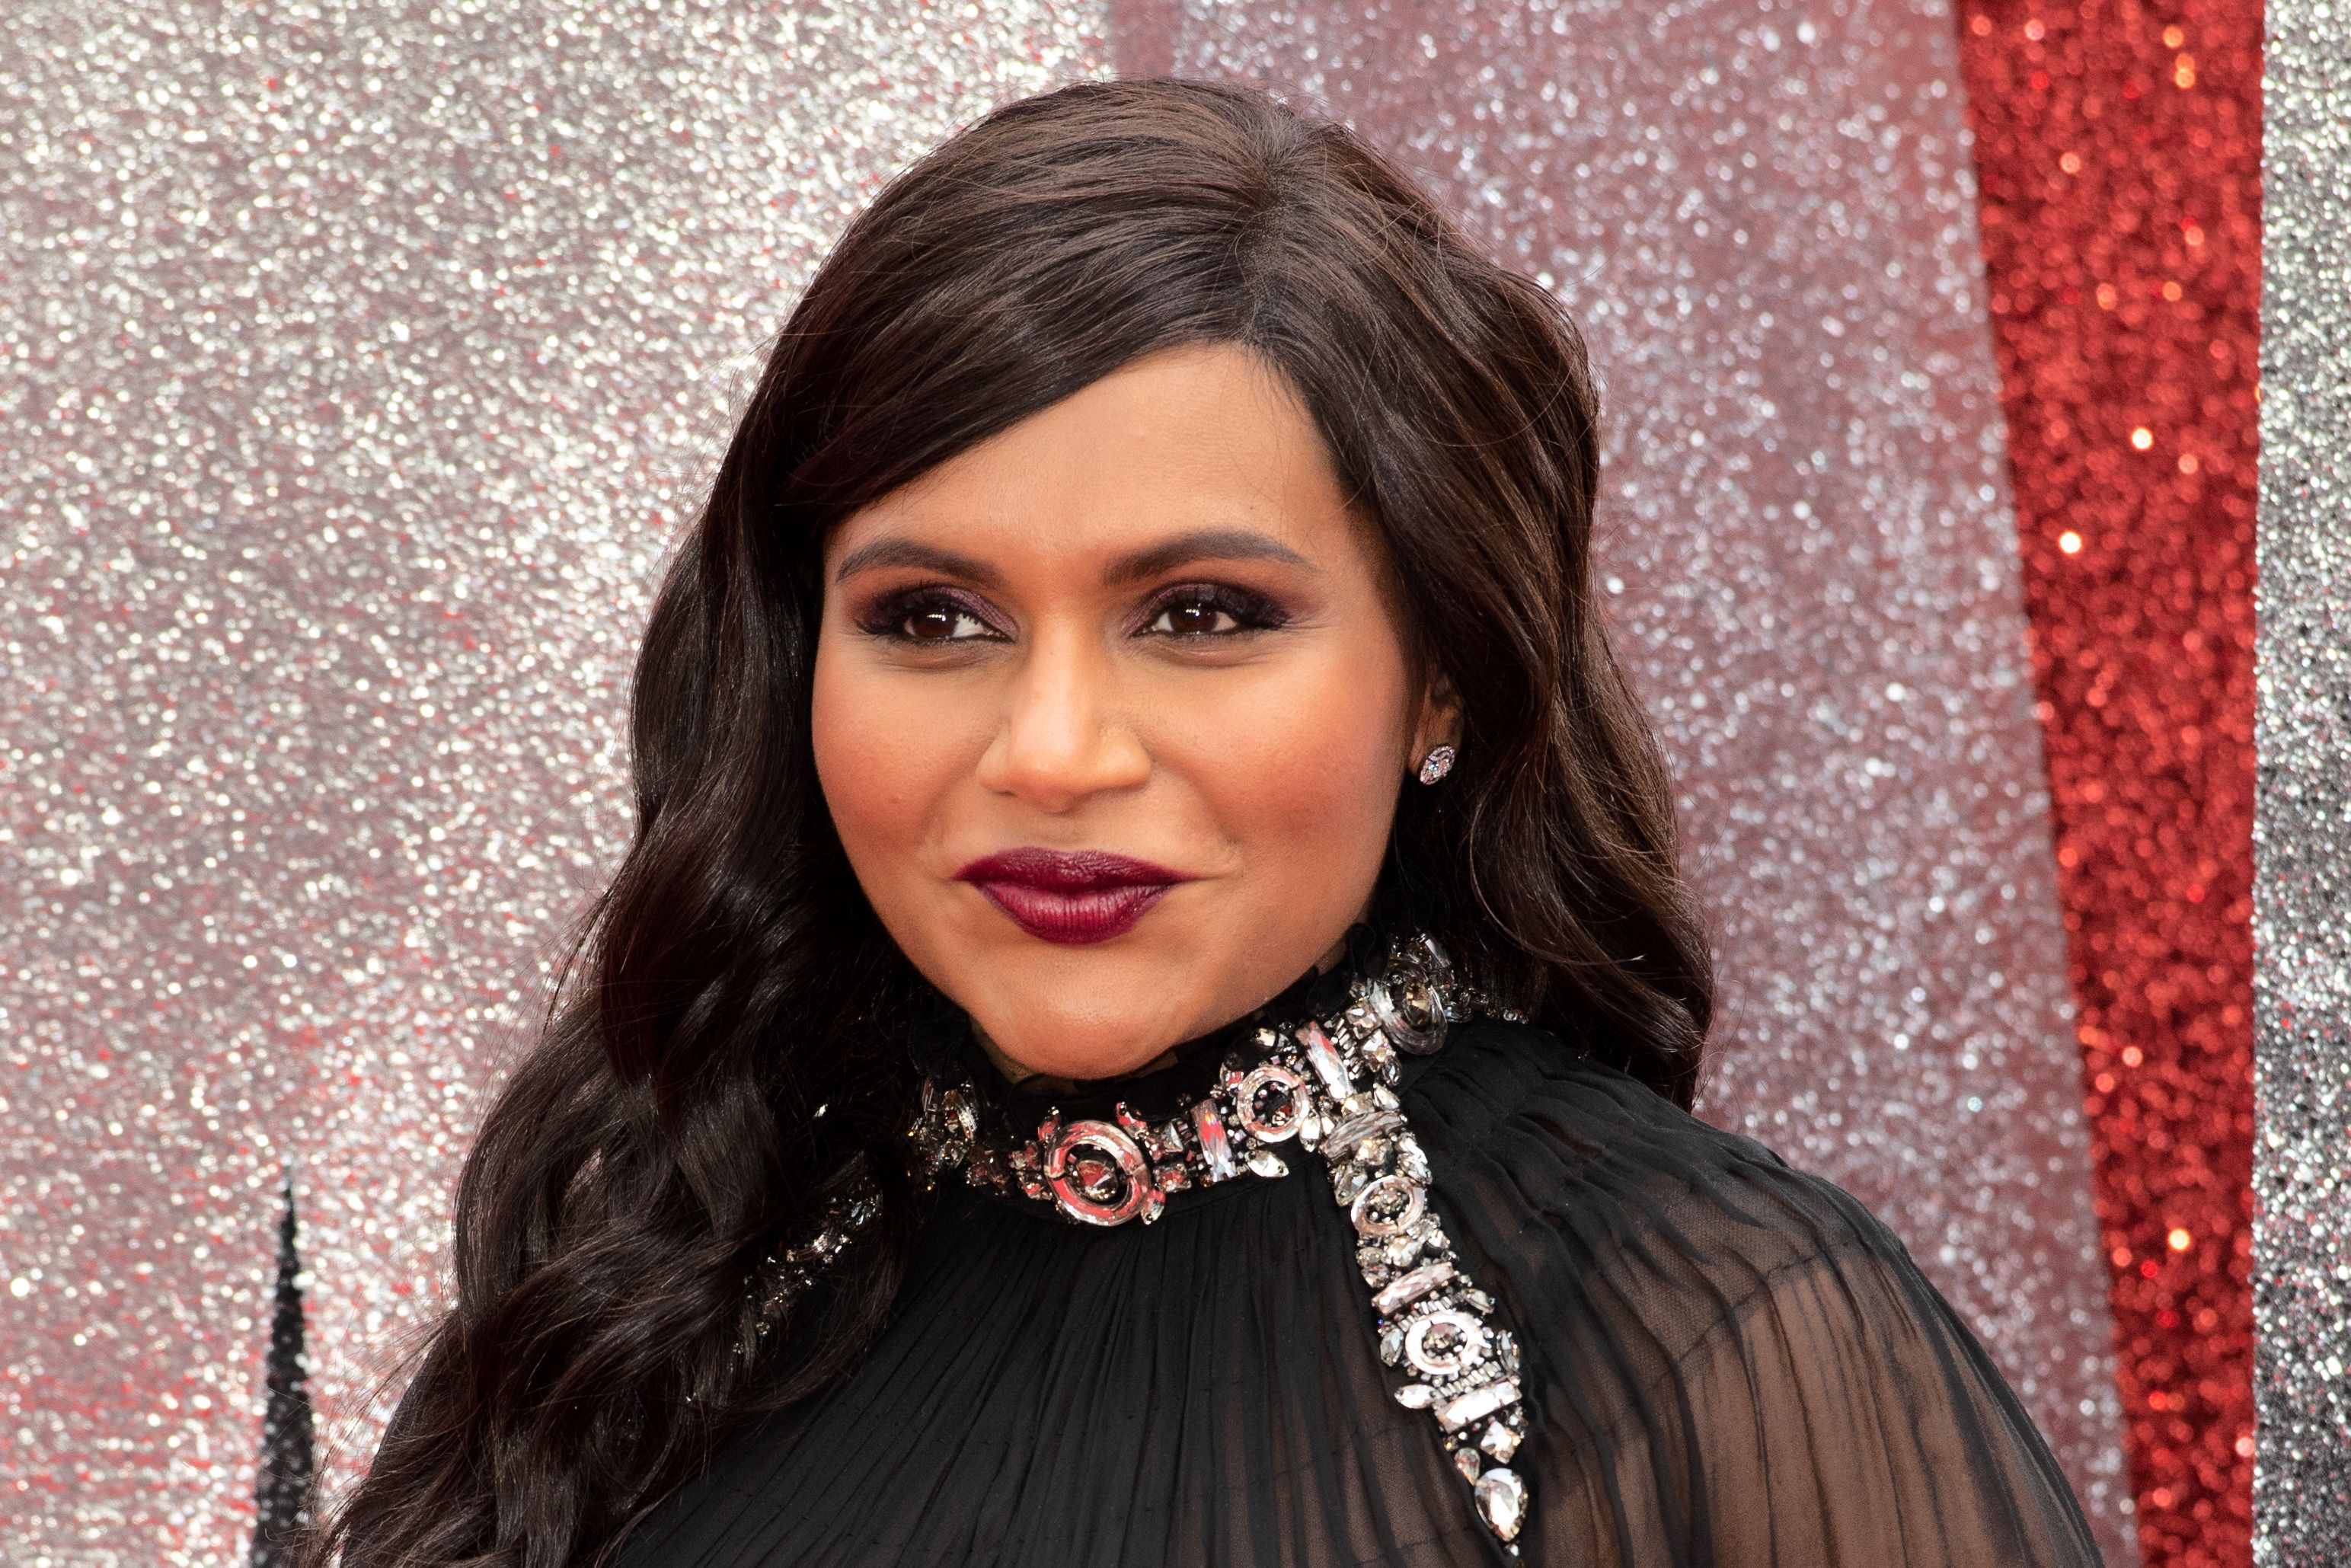 Mindy Kaling Now Has Major Projects at Netflix, Amazon, and